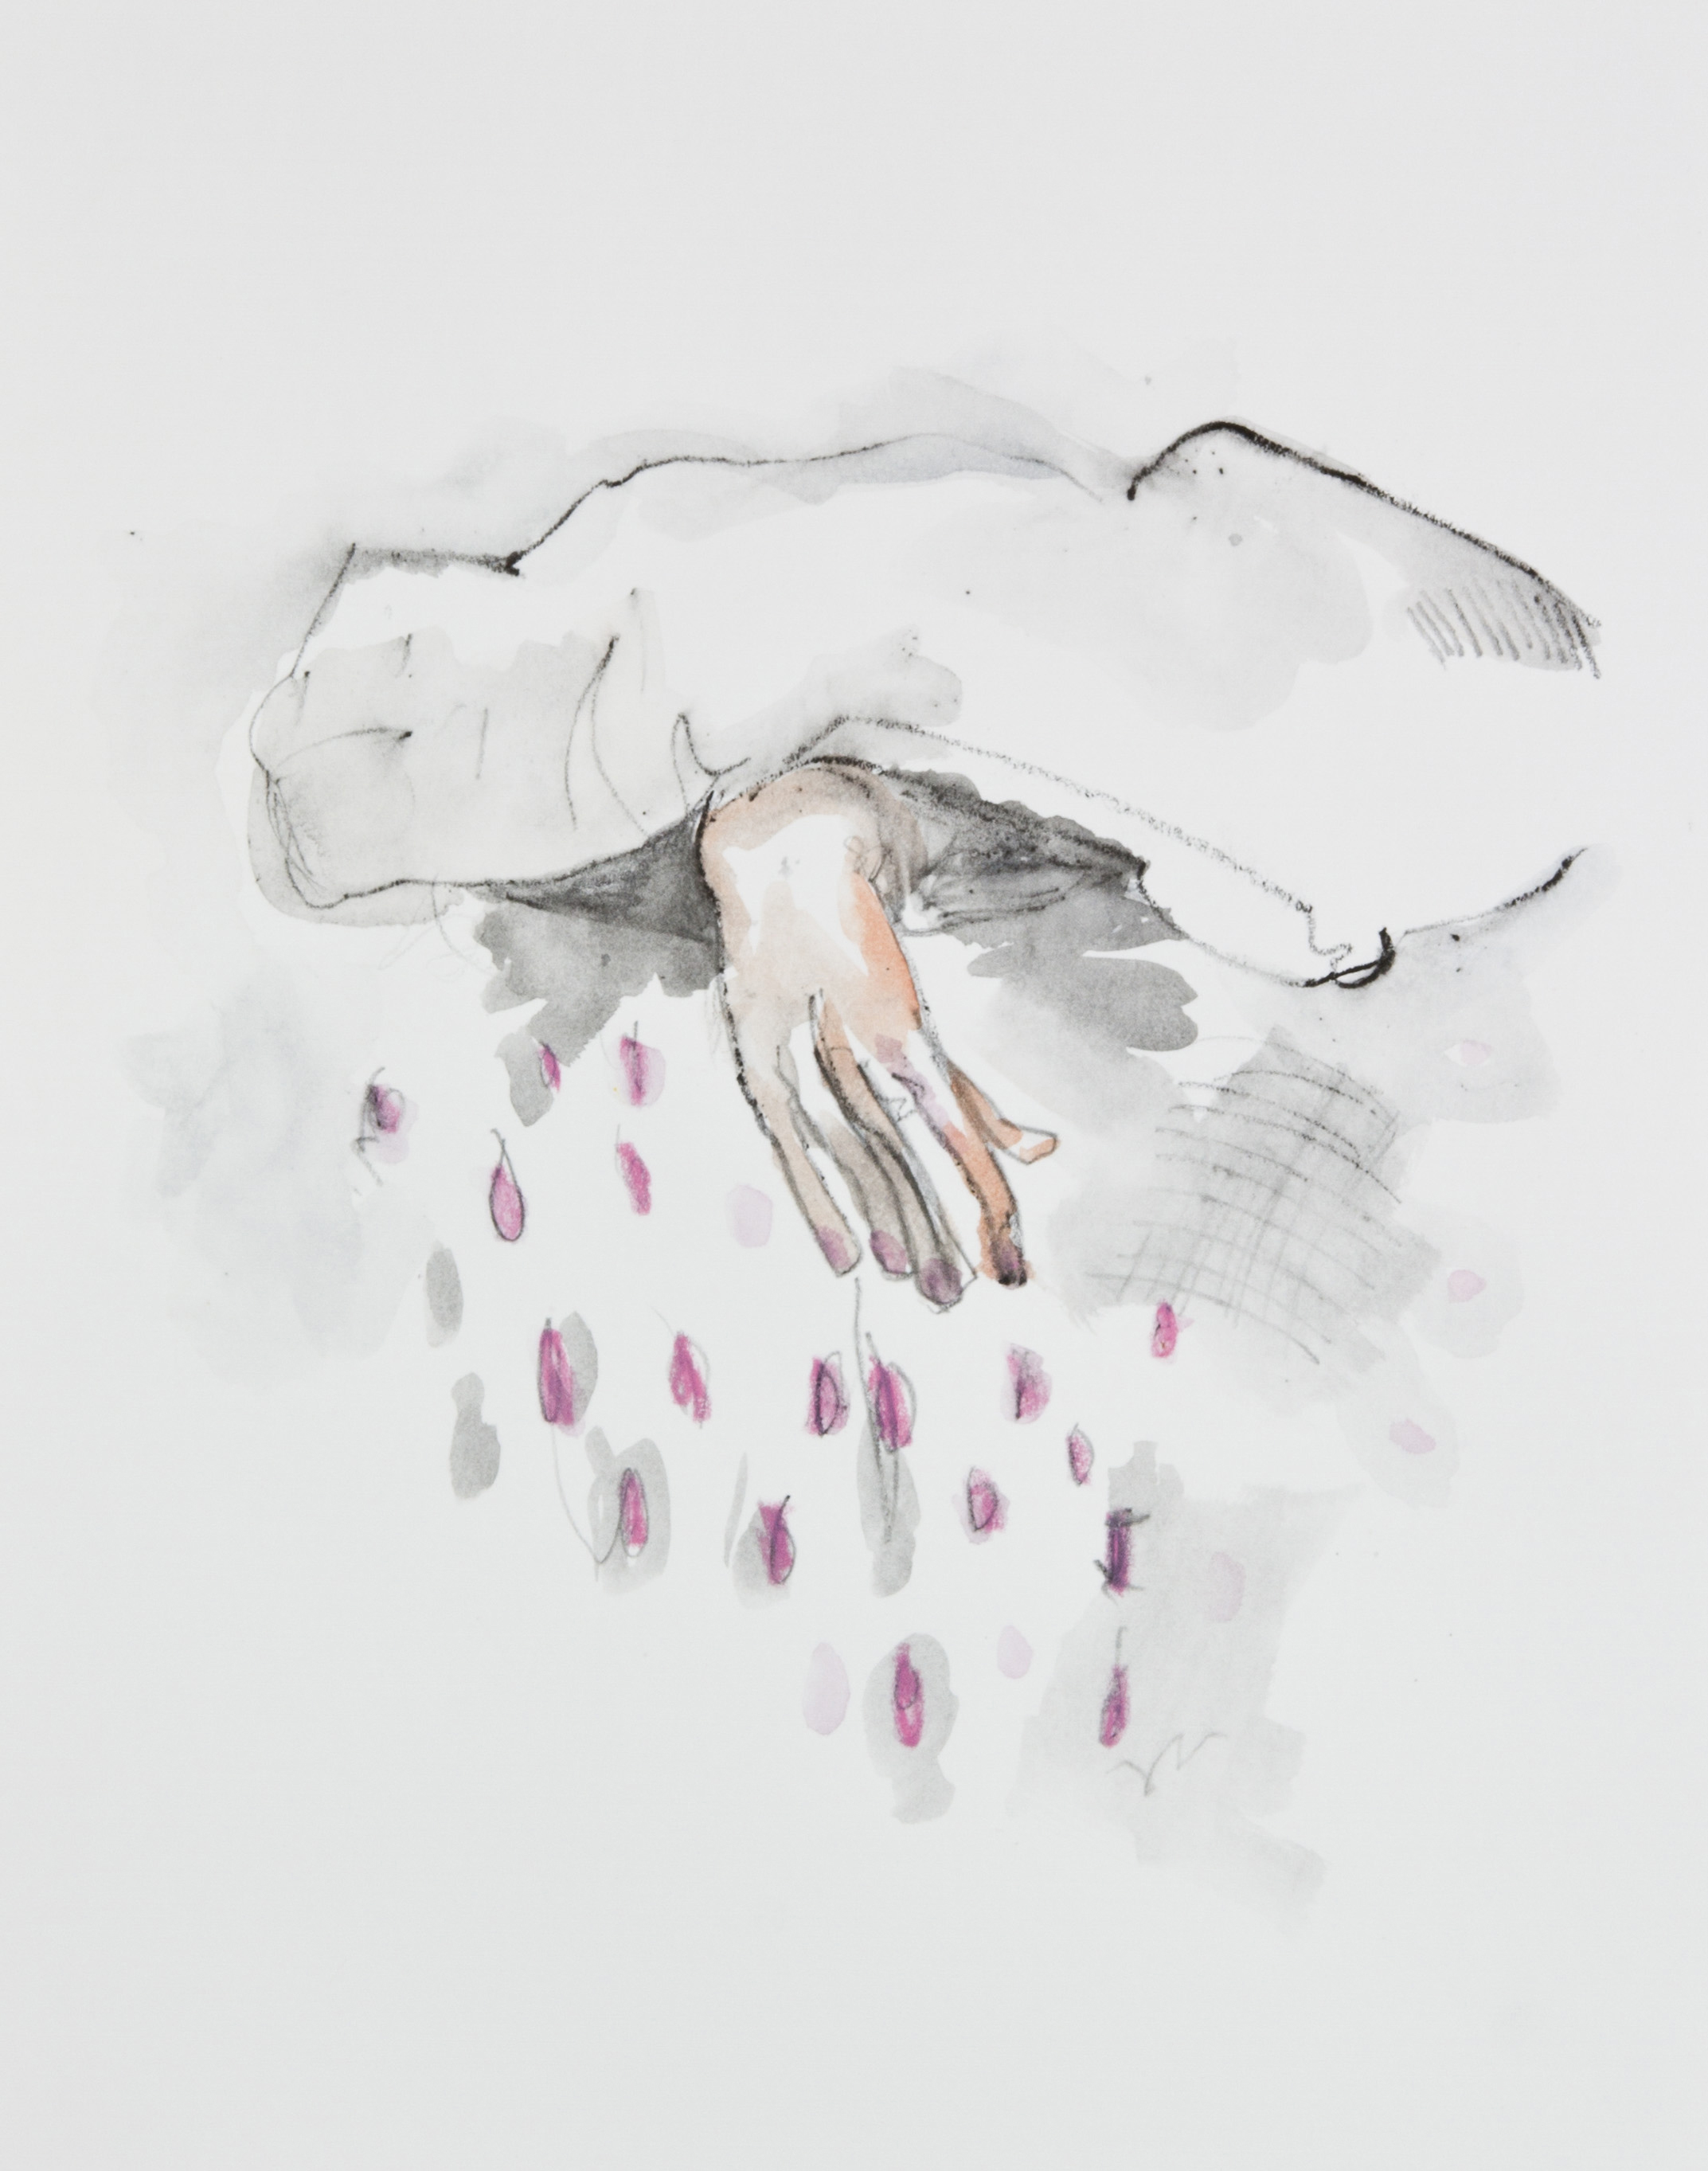 Pink Rain, 2013, graphite, crayon and watercolor pencil on paper, 11x14 inches